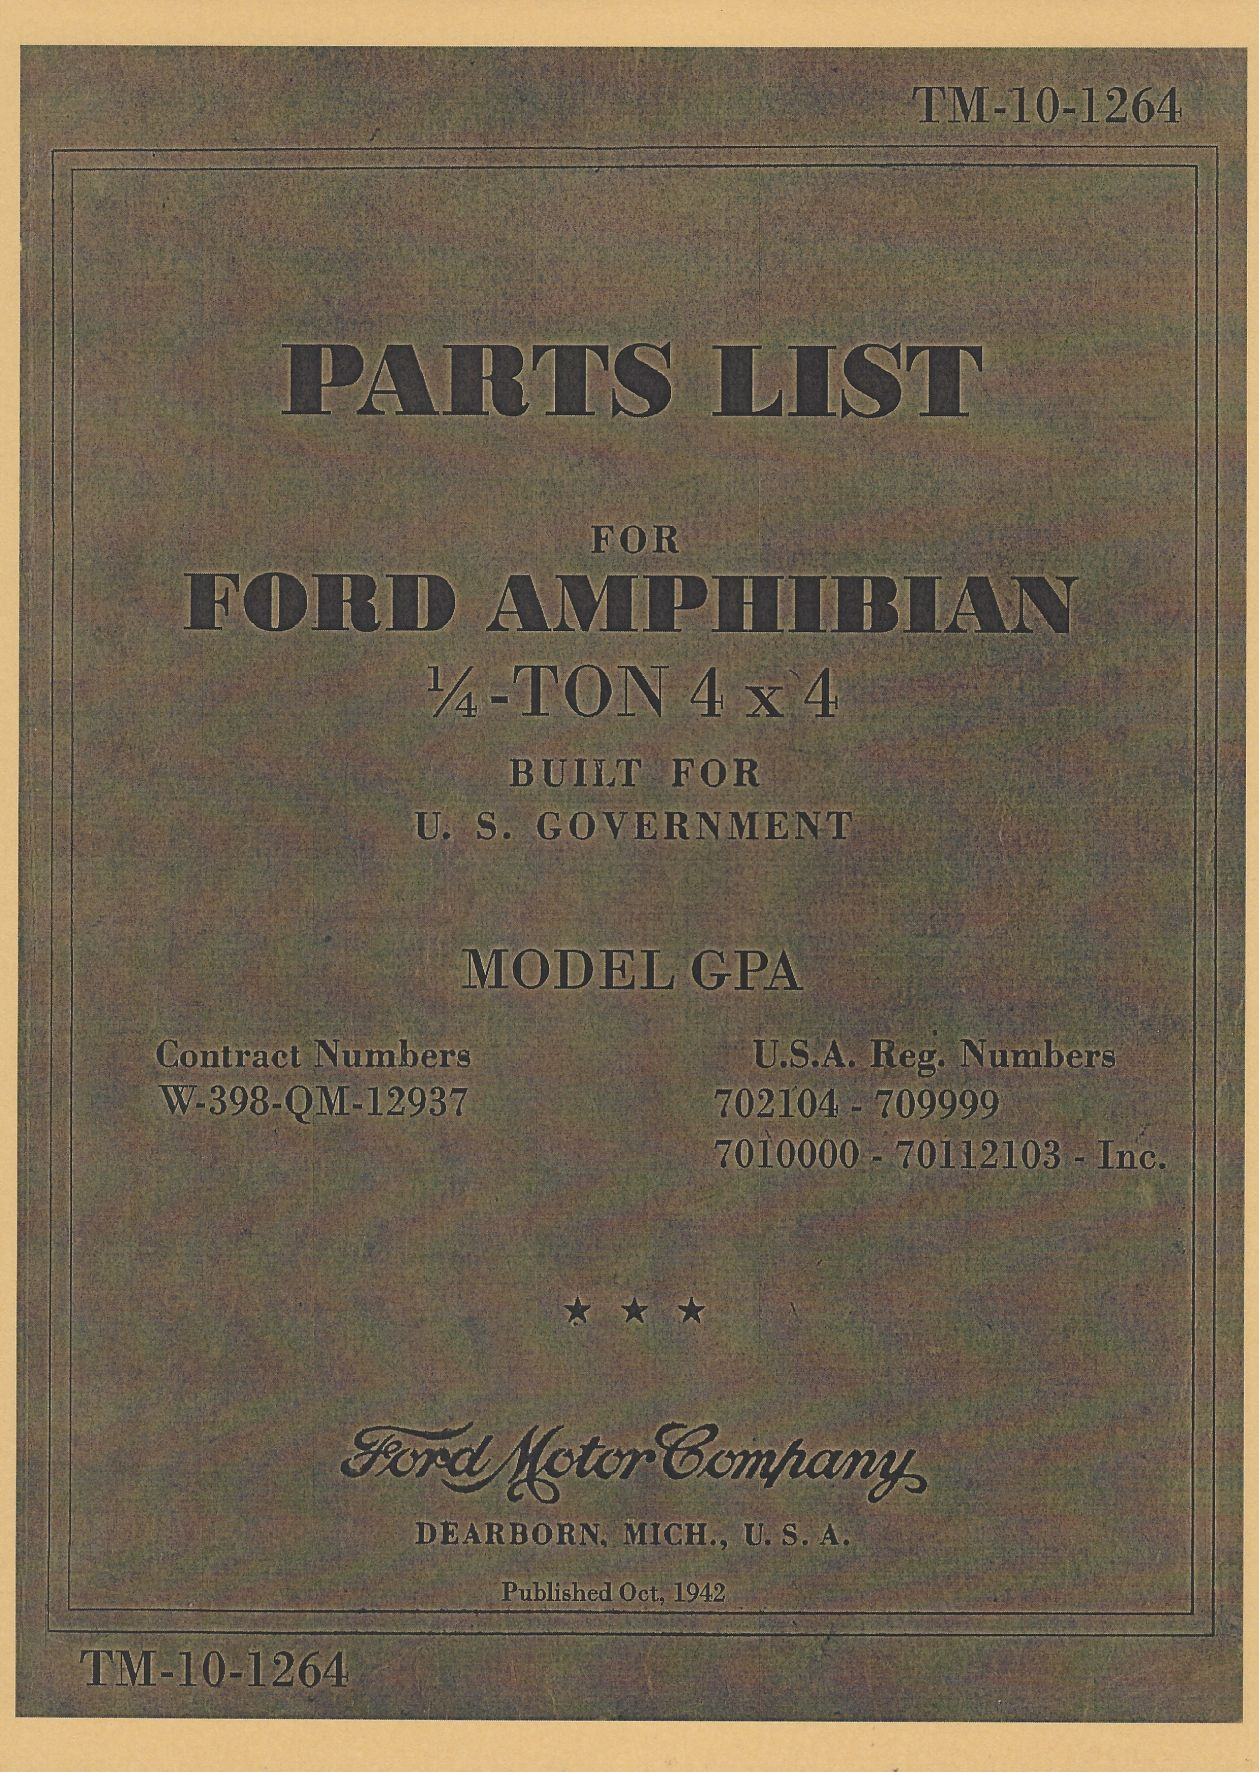 TM 10-1264 US PARTS LIST FOR FORD AMPHIBIAN ¼ - TON 4x4